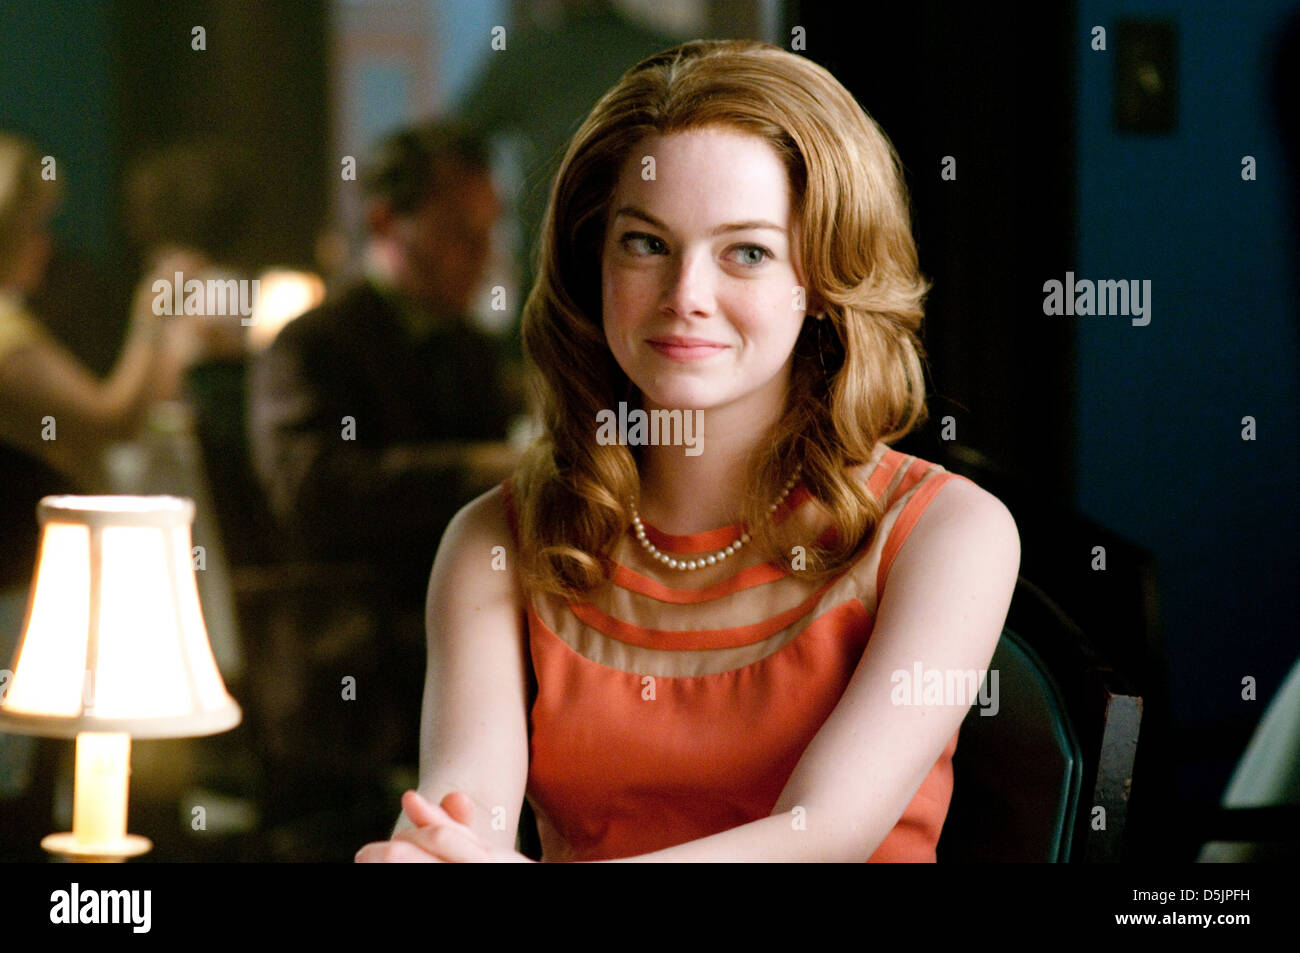 EMMA STONE THE HELP (2011) - Stock Image